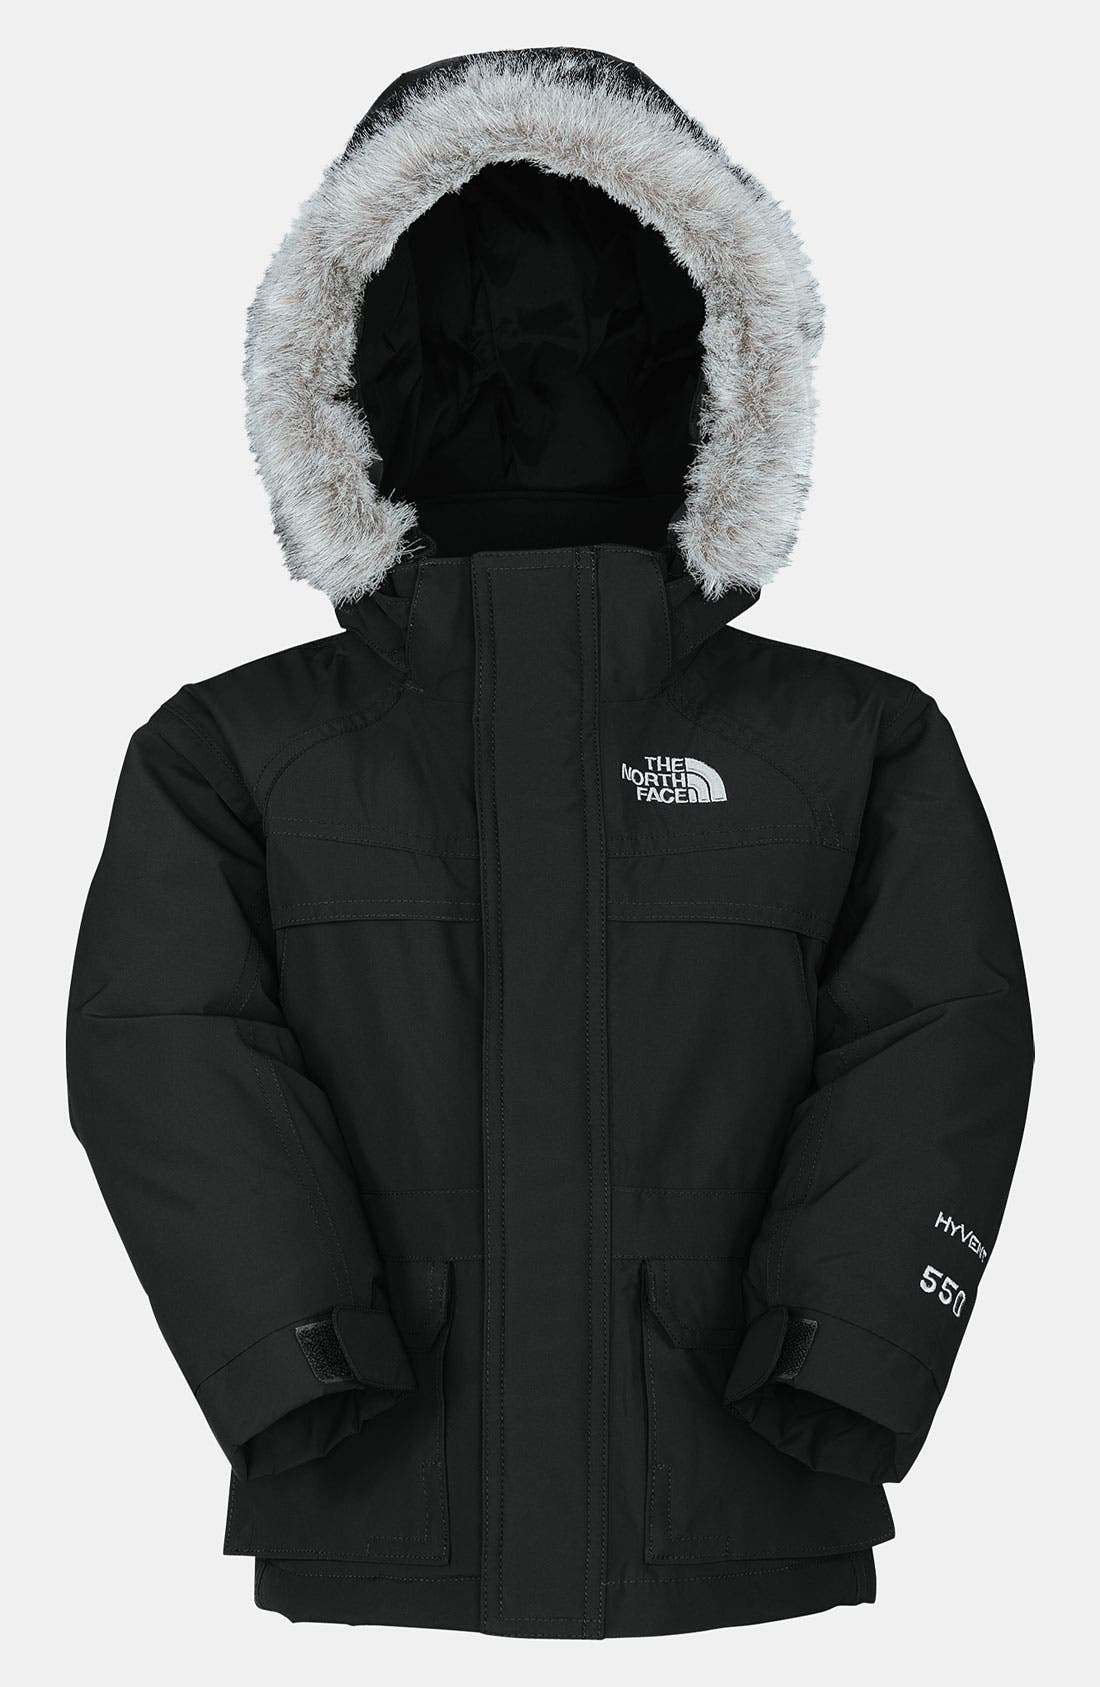 Alternate Image 1 Selected - The North Face 'McMurdo' Waterproof Insulated Parka (Toddler)